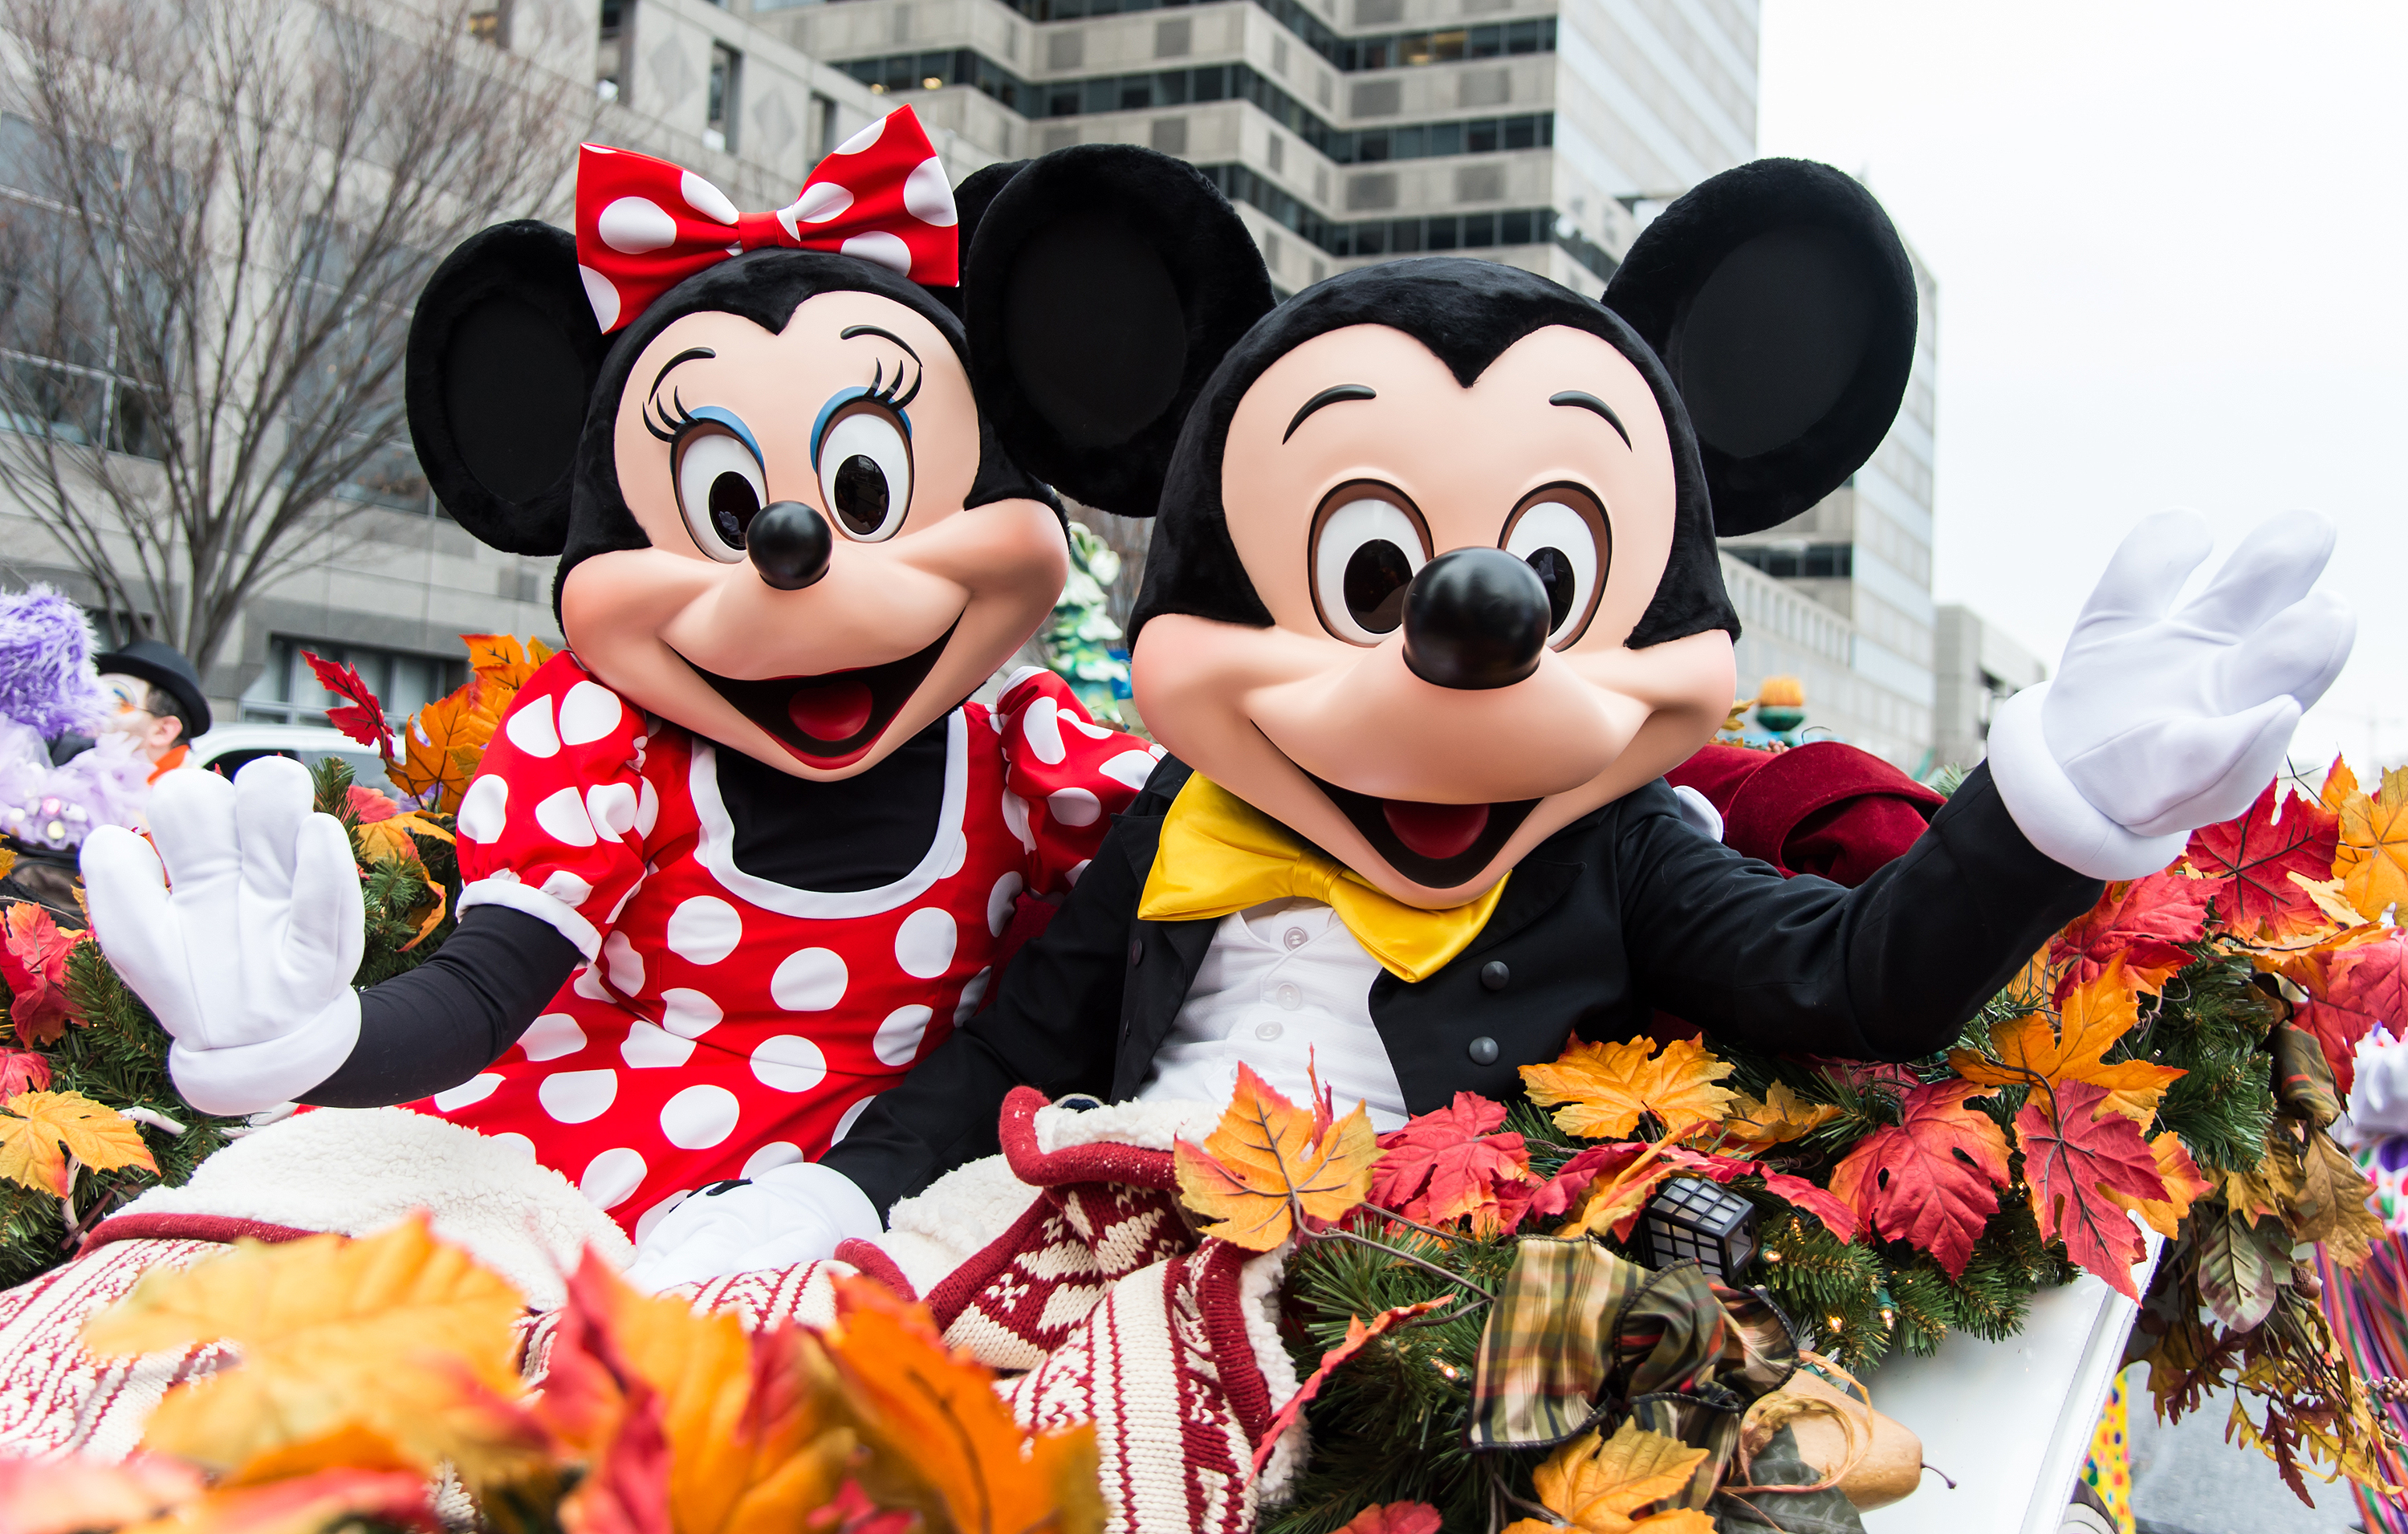 The Walt Disney Characters Minnie Mouse and Mickey Mouse attend the 95th Annual 6abc Dunkin' Donuts Thanksgiving Day Parade on November 27, 2014 in Philadelphia, Pennsylvania.